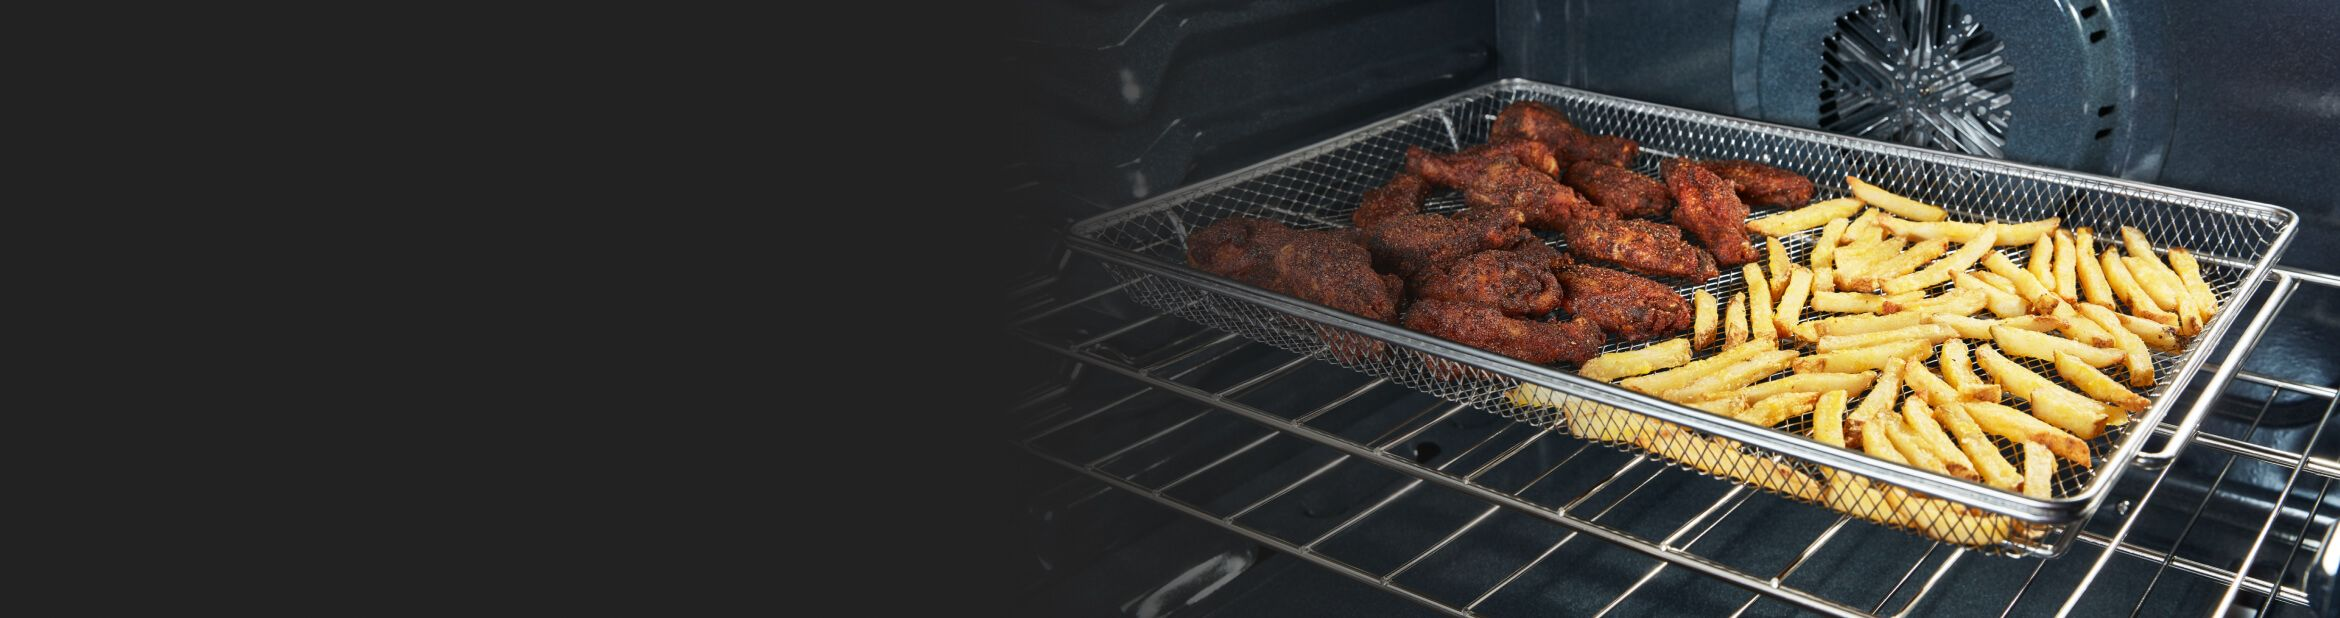 Food frying inside a Whirlpool® Range with Air Fry Mode.